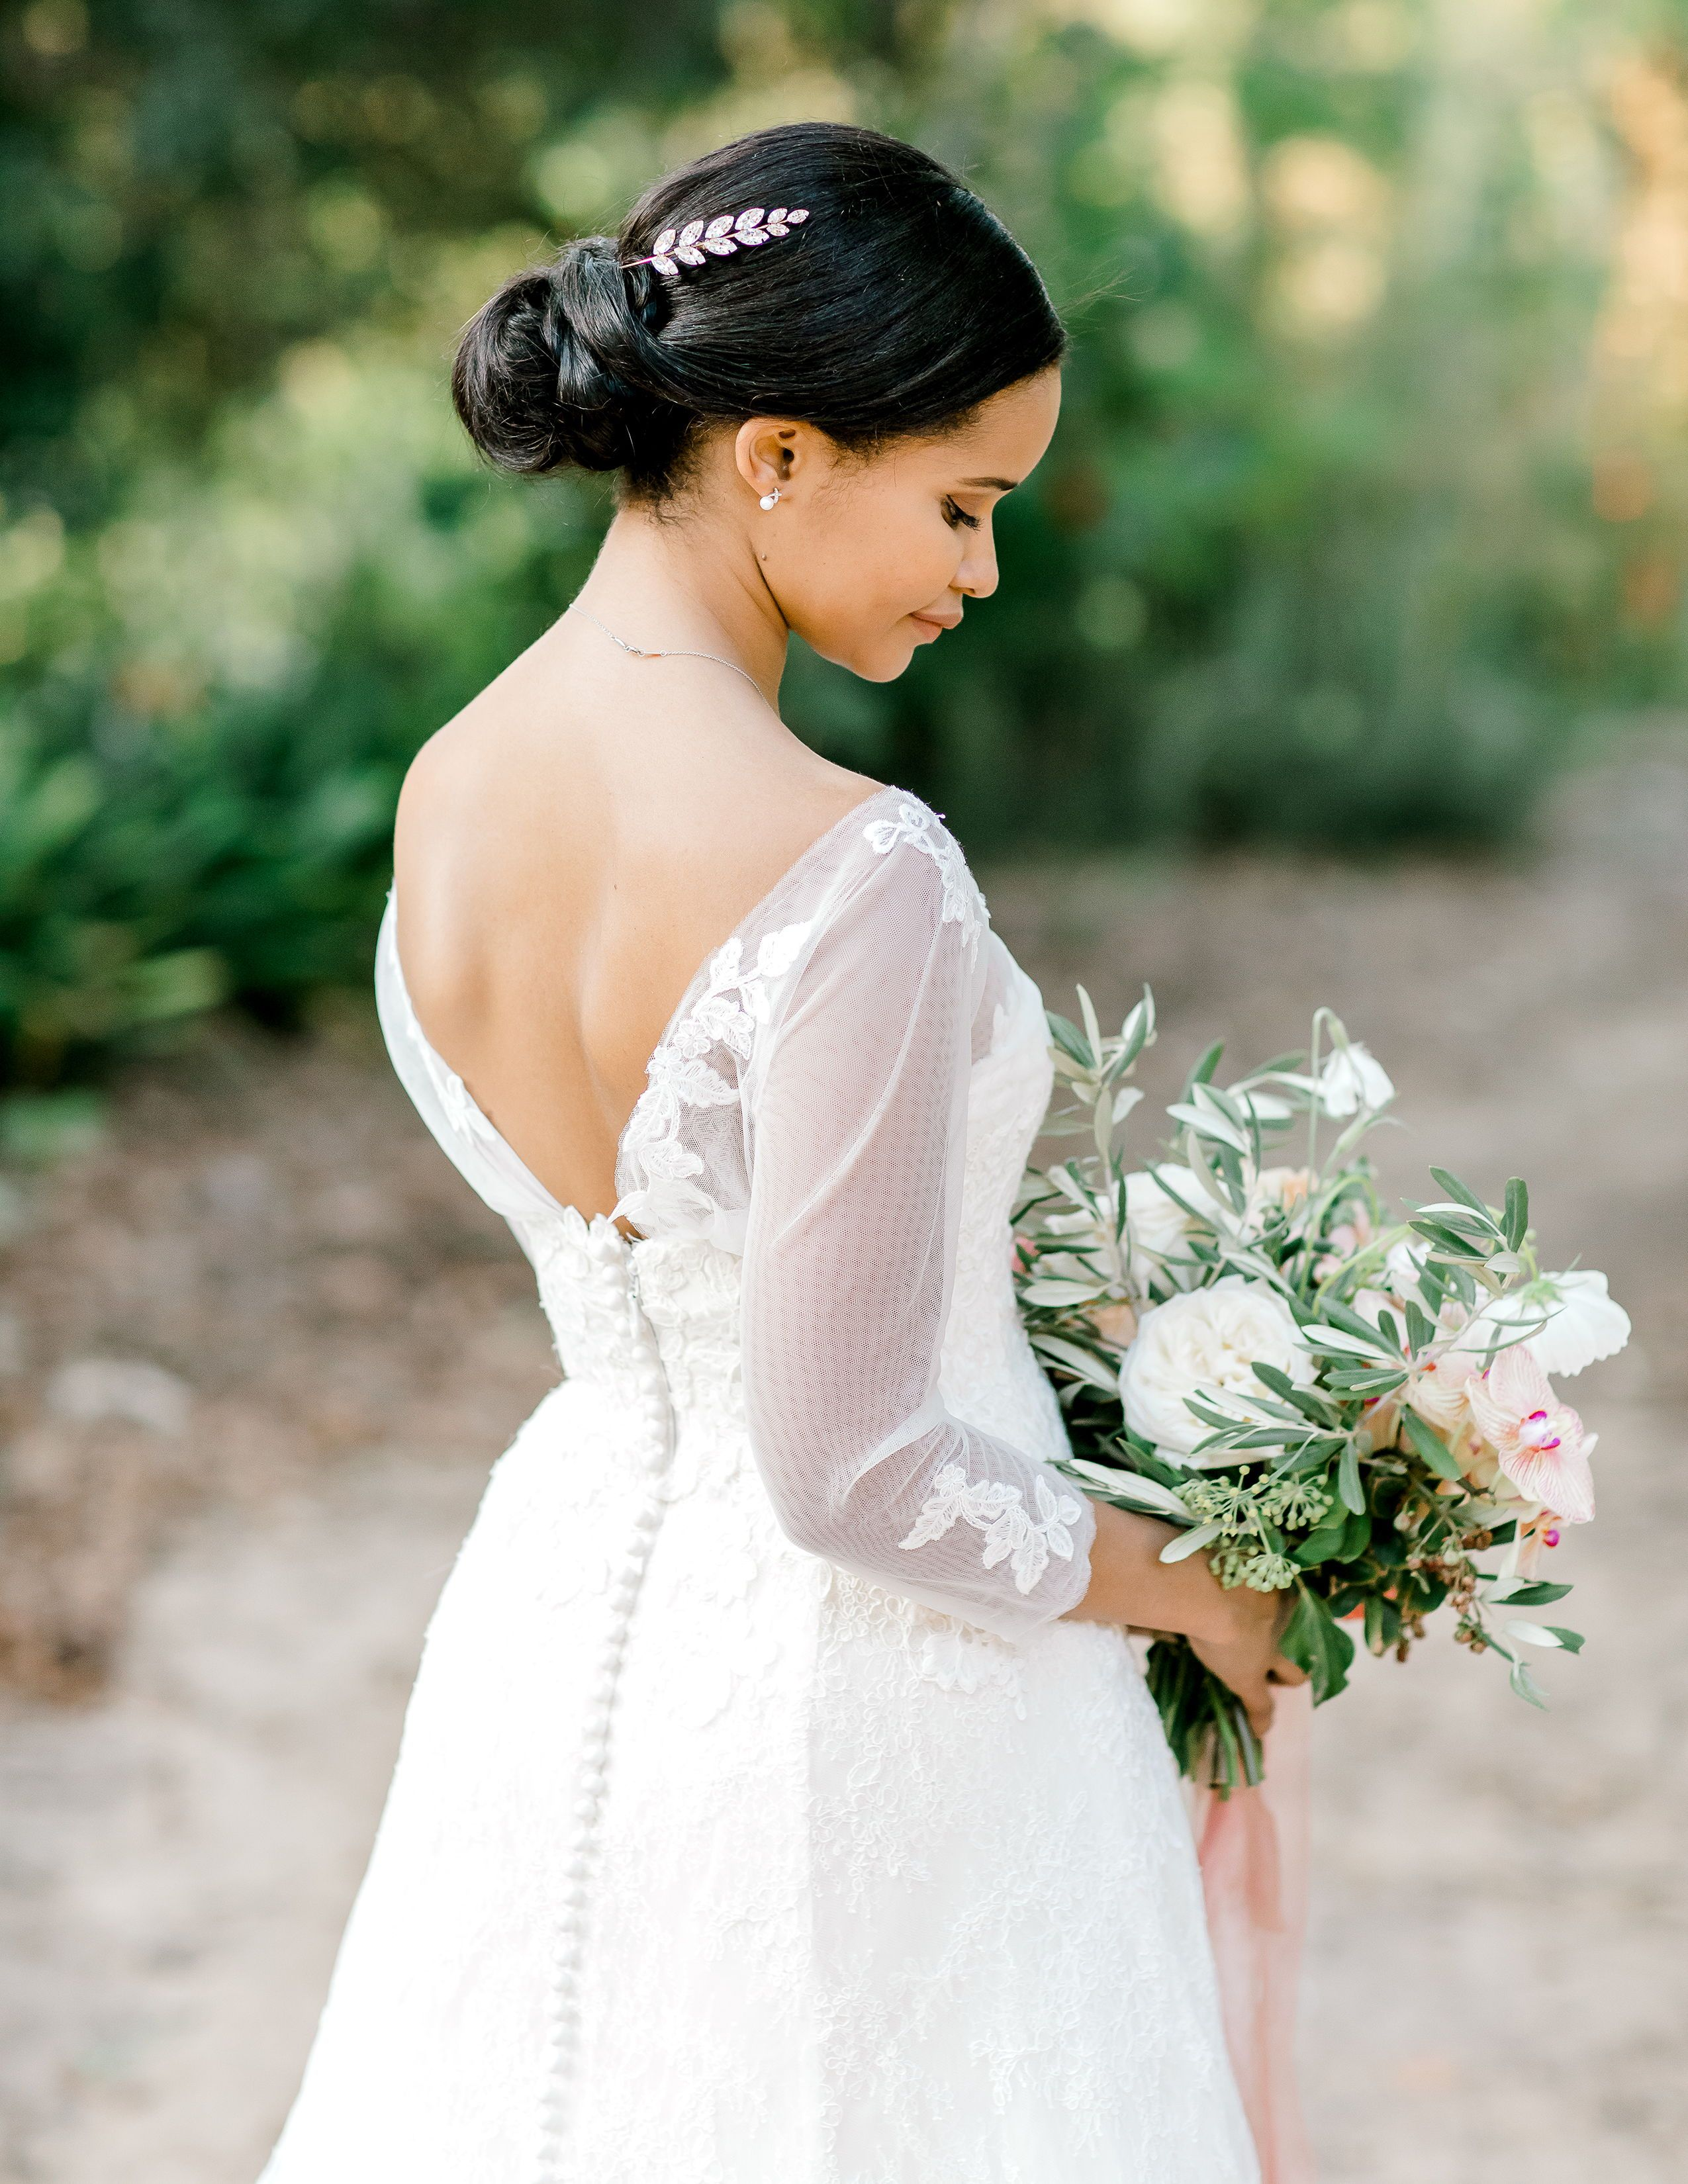 This Couple Tied The Knot In A Garden In Cape Town And Then Celebrated In A Restored Wine Cellar Wedding Dress Long Sleeve Wedding Dresses Wedding Dress Inspiration [ 3300 x 2550 Pixel ]